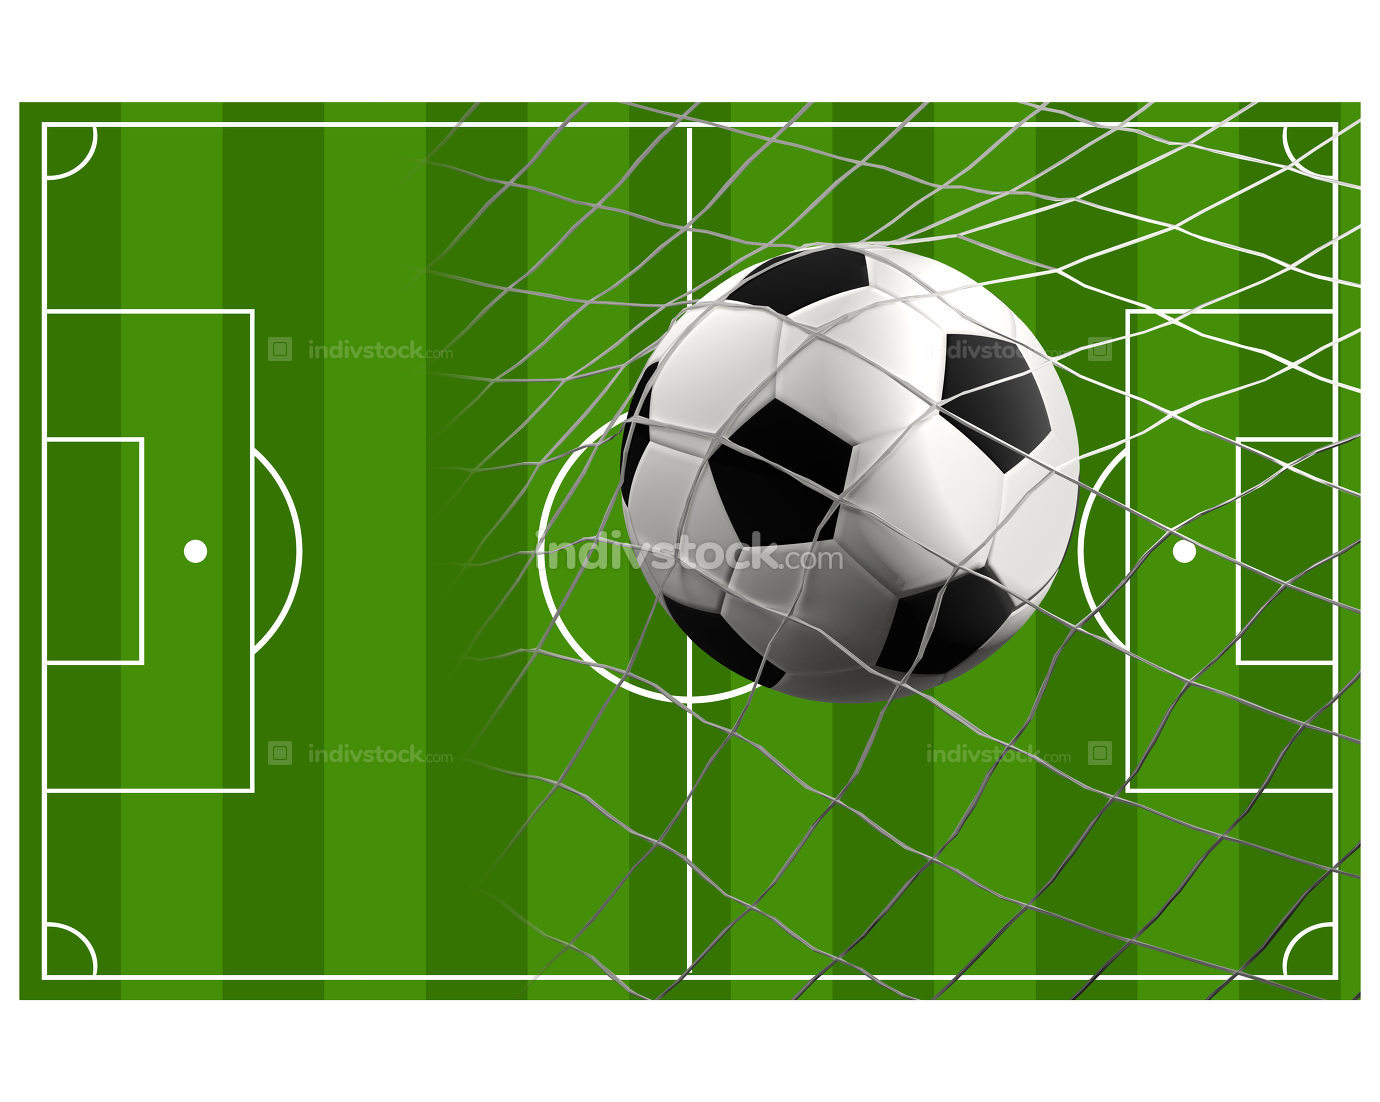 soccer field soccer ball 3d illustration